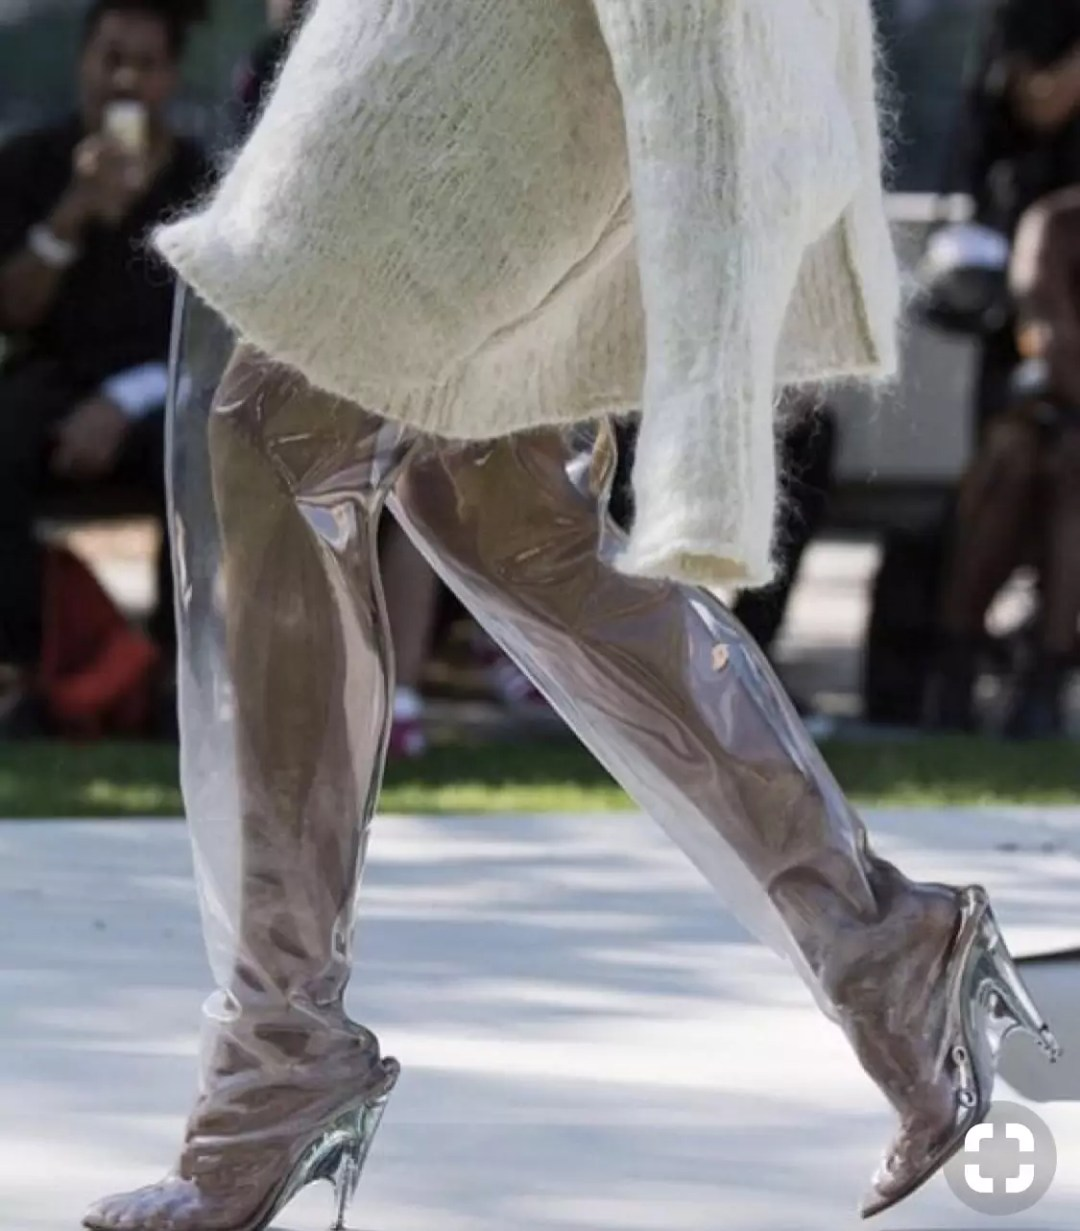 yeezy season 4 transparent boots runway alley girl - Who did Design the Very First Clear Transparent Shoes?